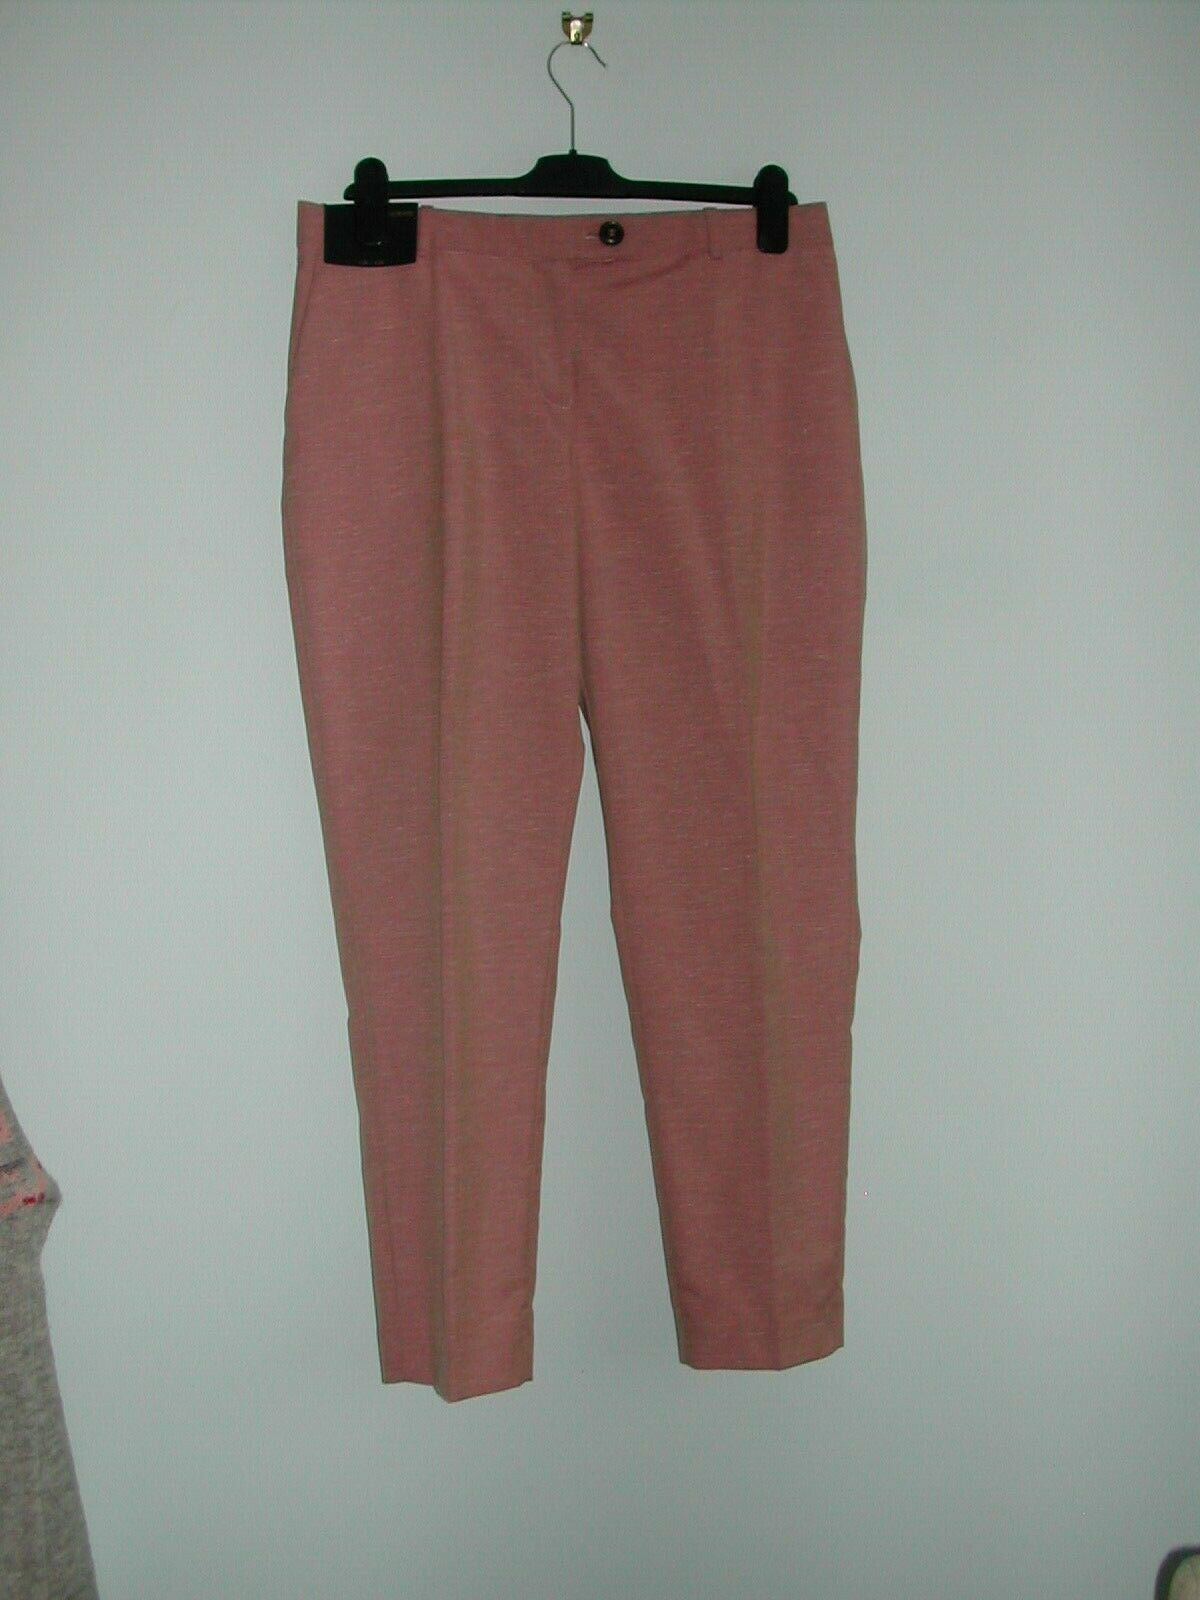 LADIES TAILORED SLIM LINEN BLEND TROUSERS  -  NEXT  -  PINK  -  SIZE 12  -  BNWT